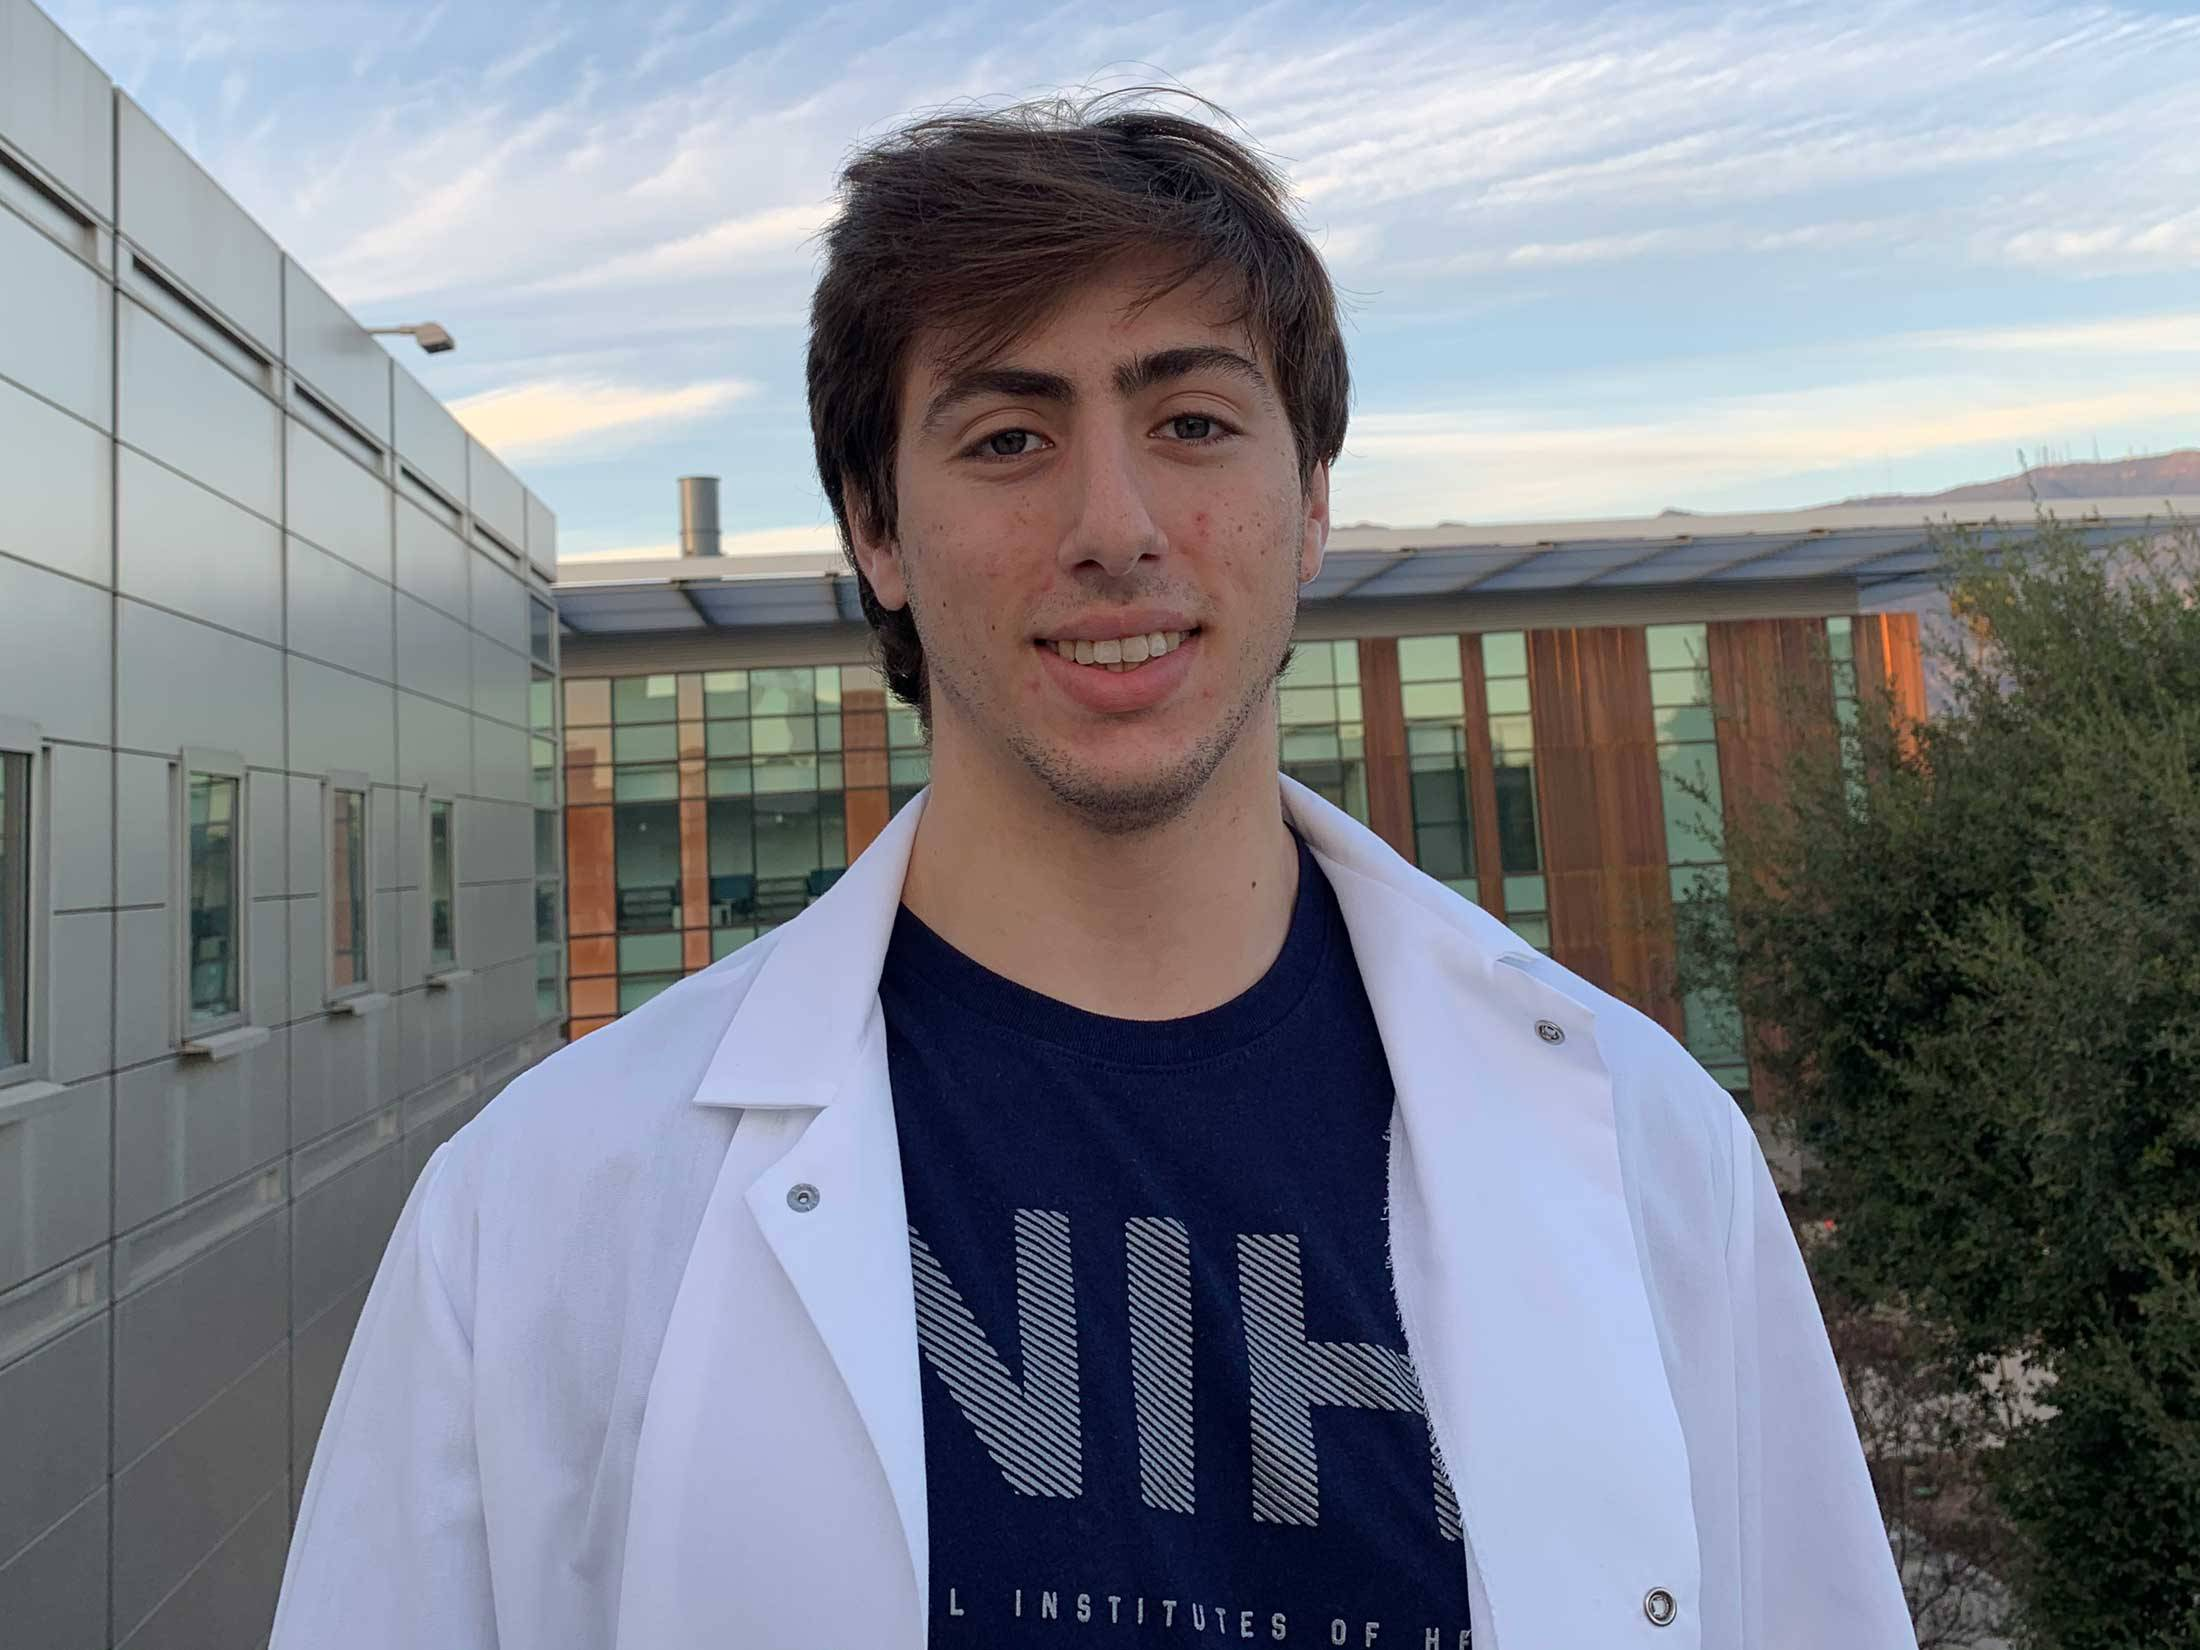 Portrait of William Rosencrans '19 in lab coat